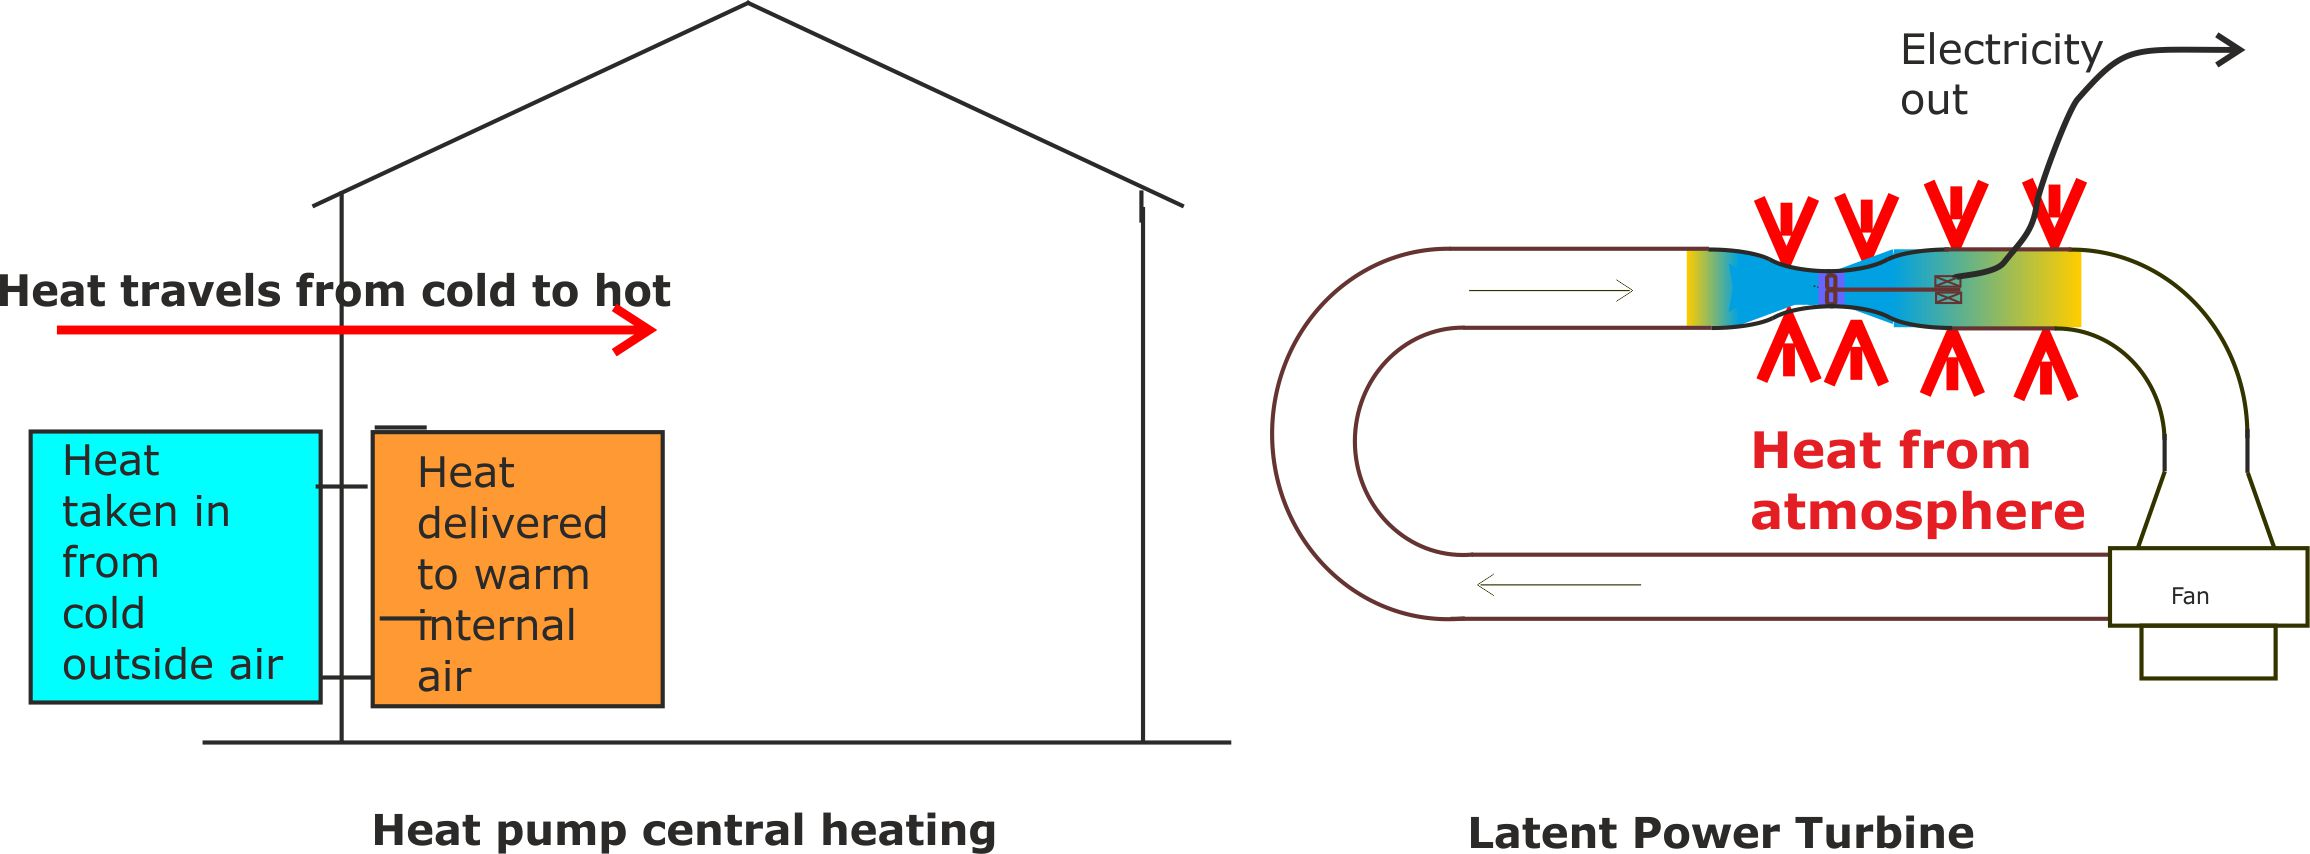 LPT and Heat Pump